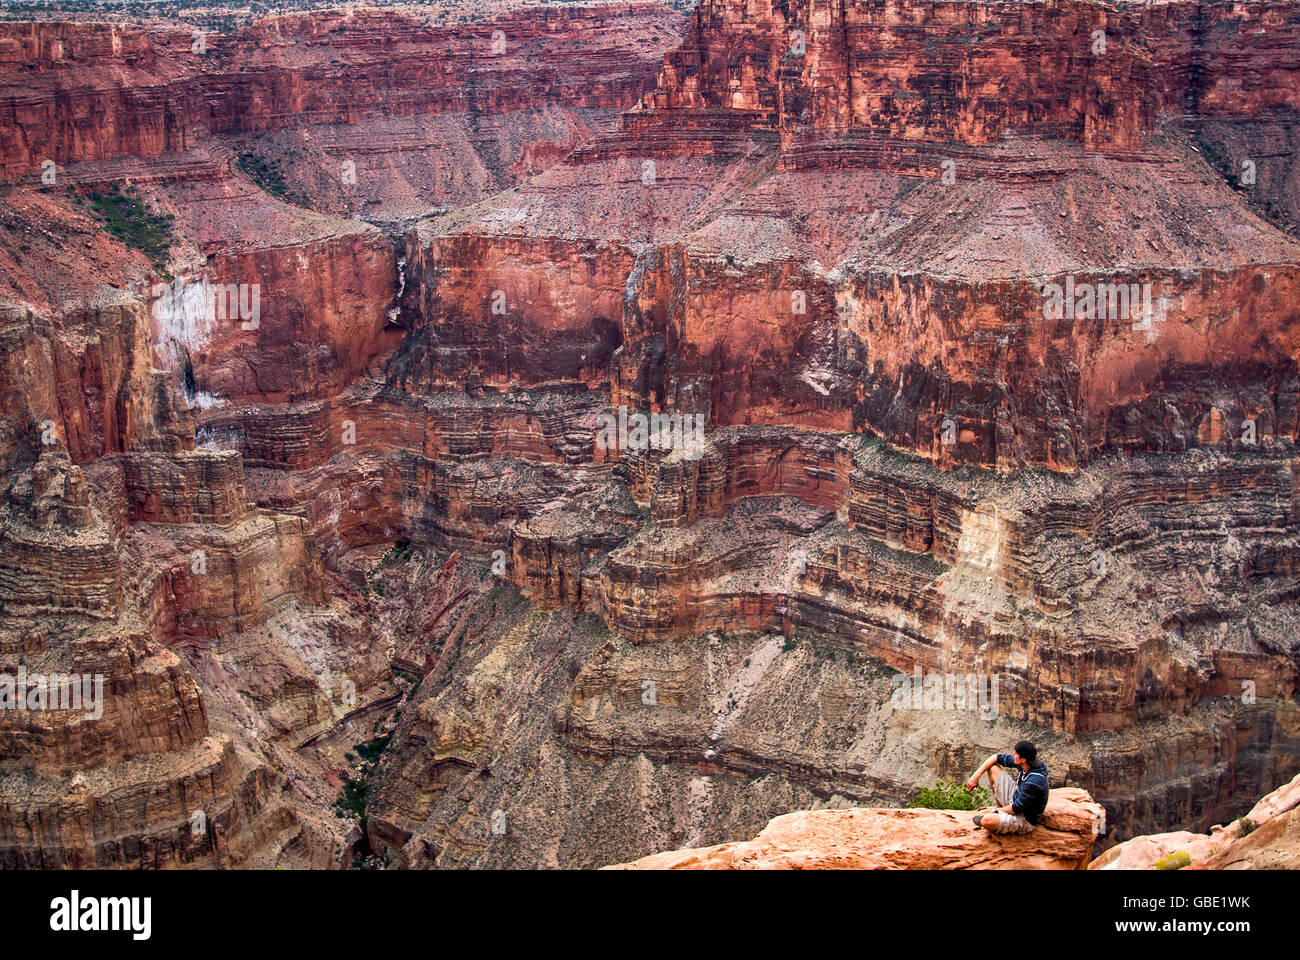 Hiker looking at Grand Canyon from Toroweap Point, 1000 meters above Colorado River, Arizona, USA Stock Photo